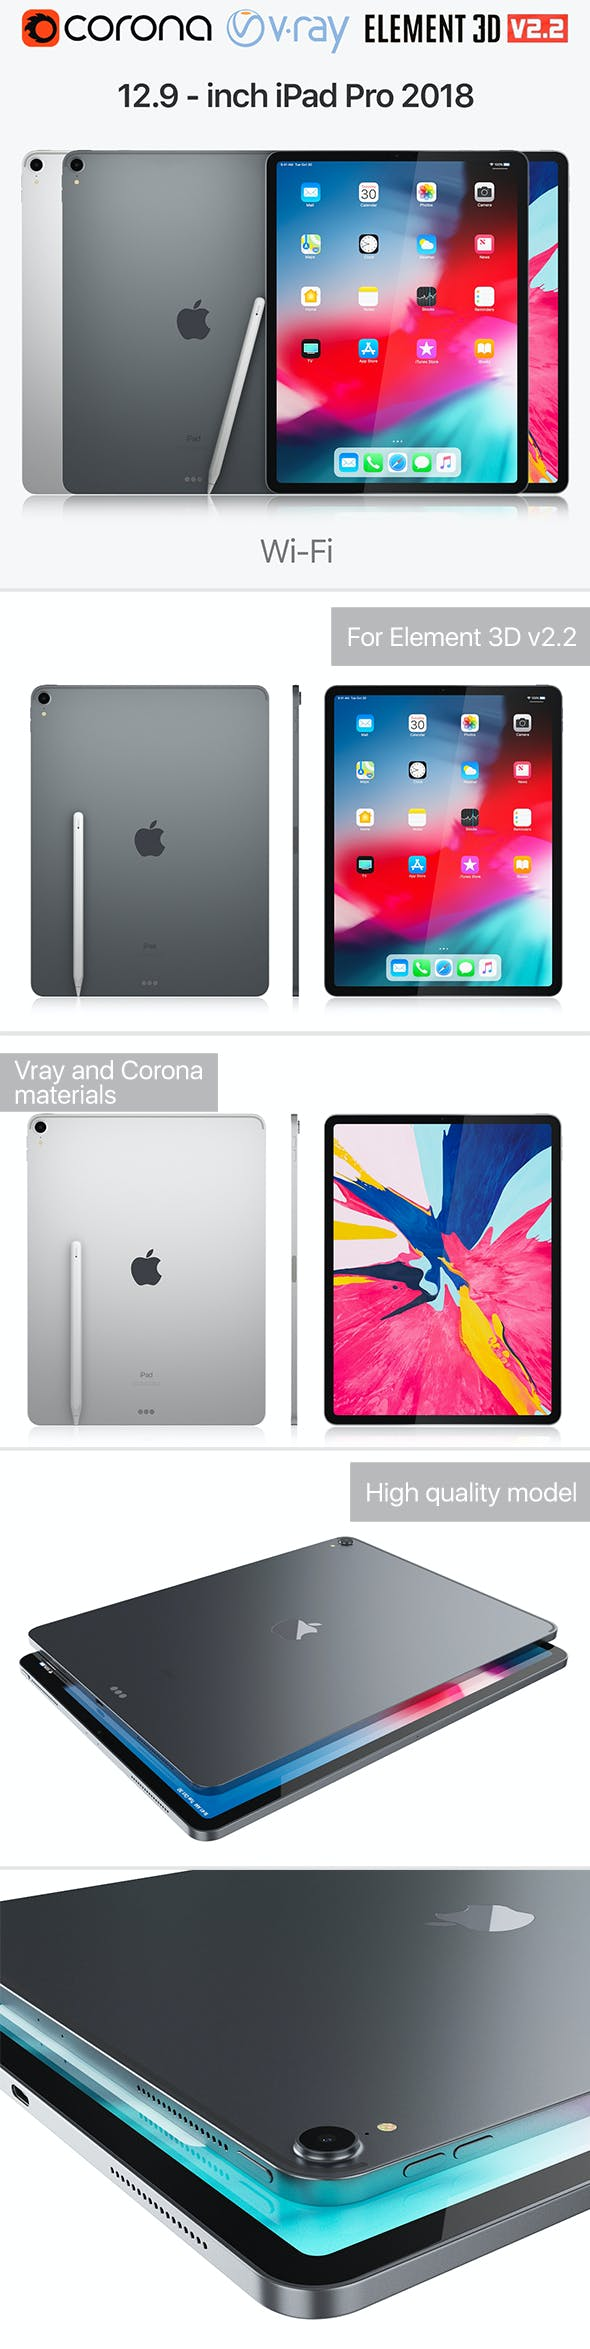 Apple iPad Pro 12.9 inch Wi-Fi 2018 and New Apple Pencil - 3DOcean Item for Sale